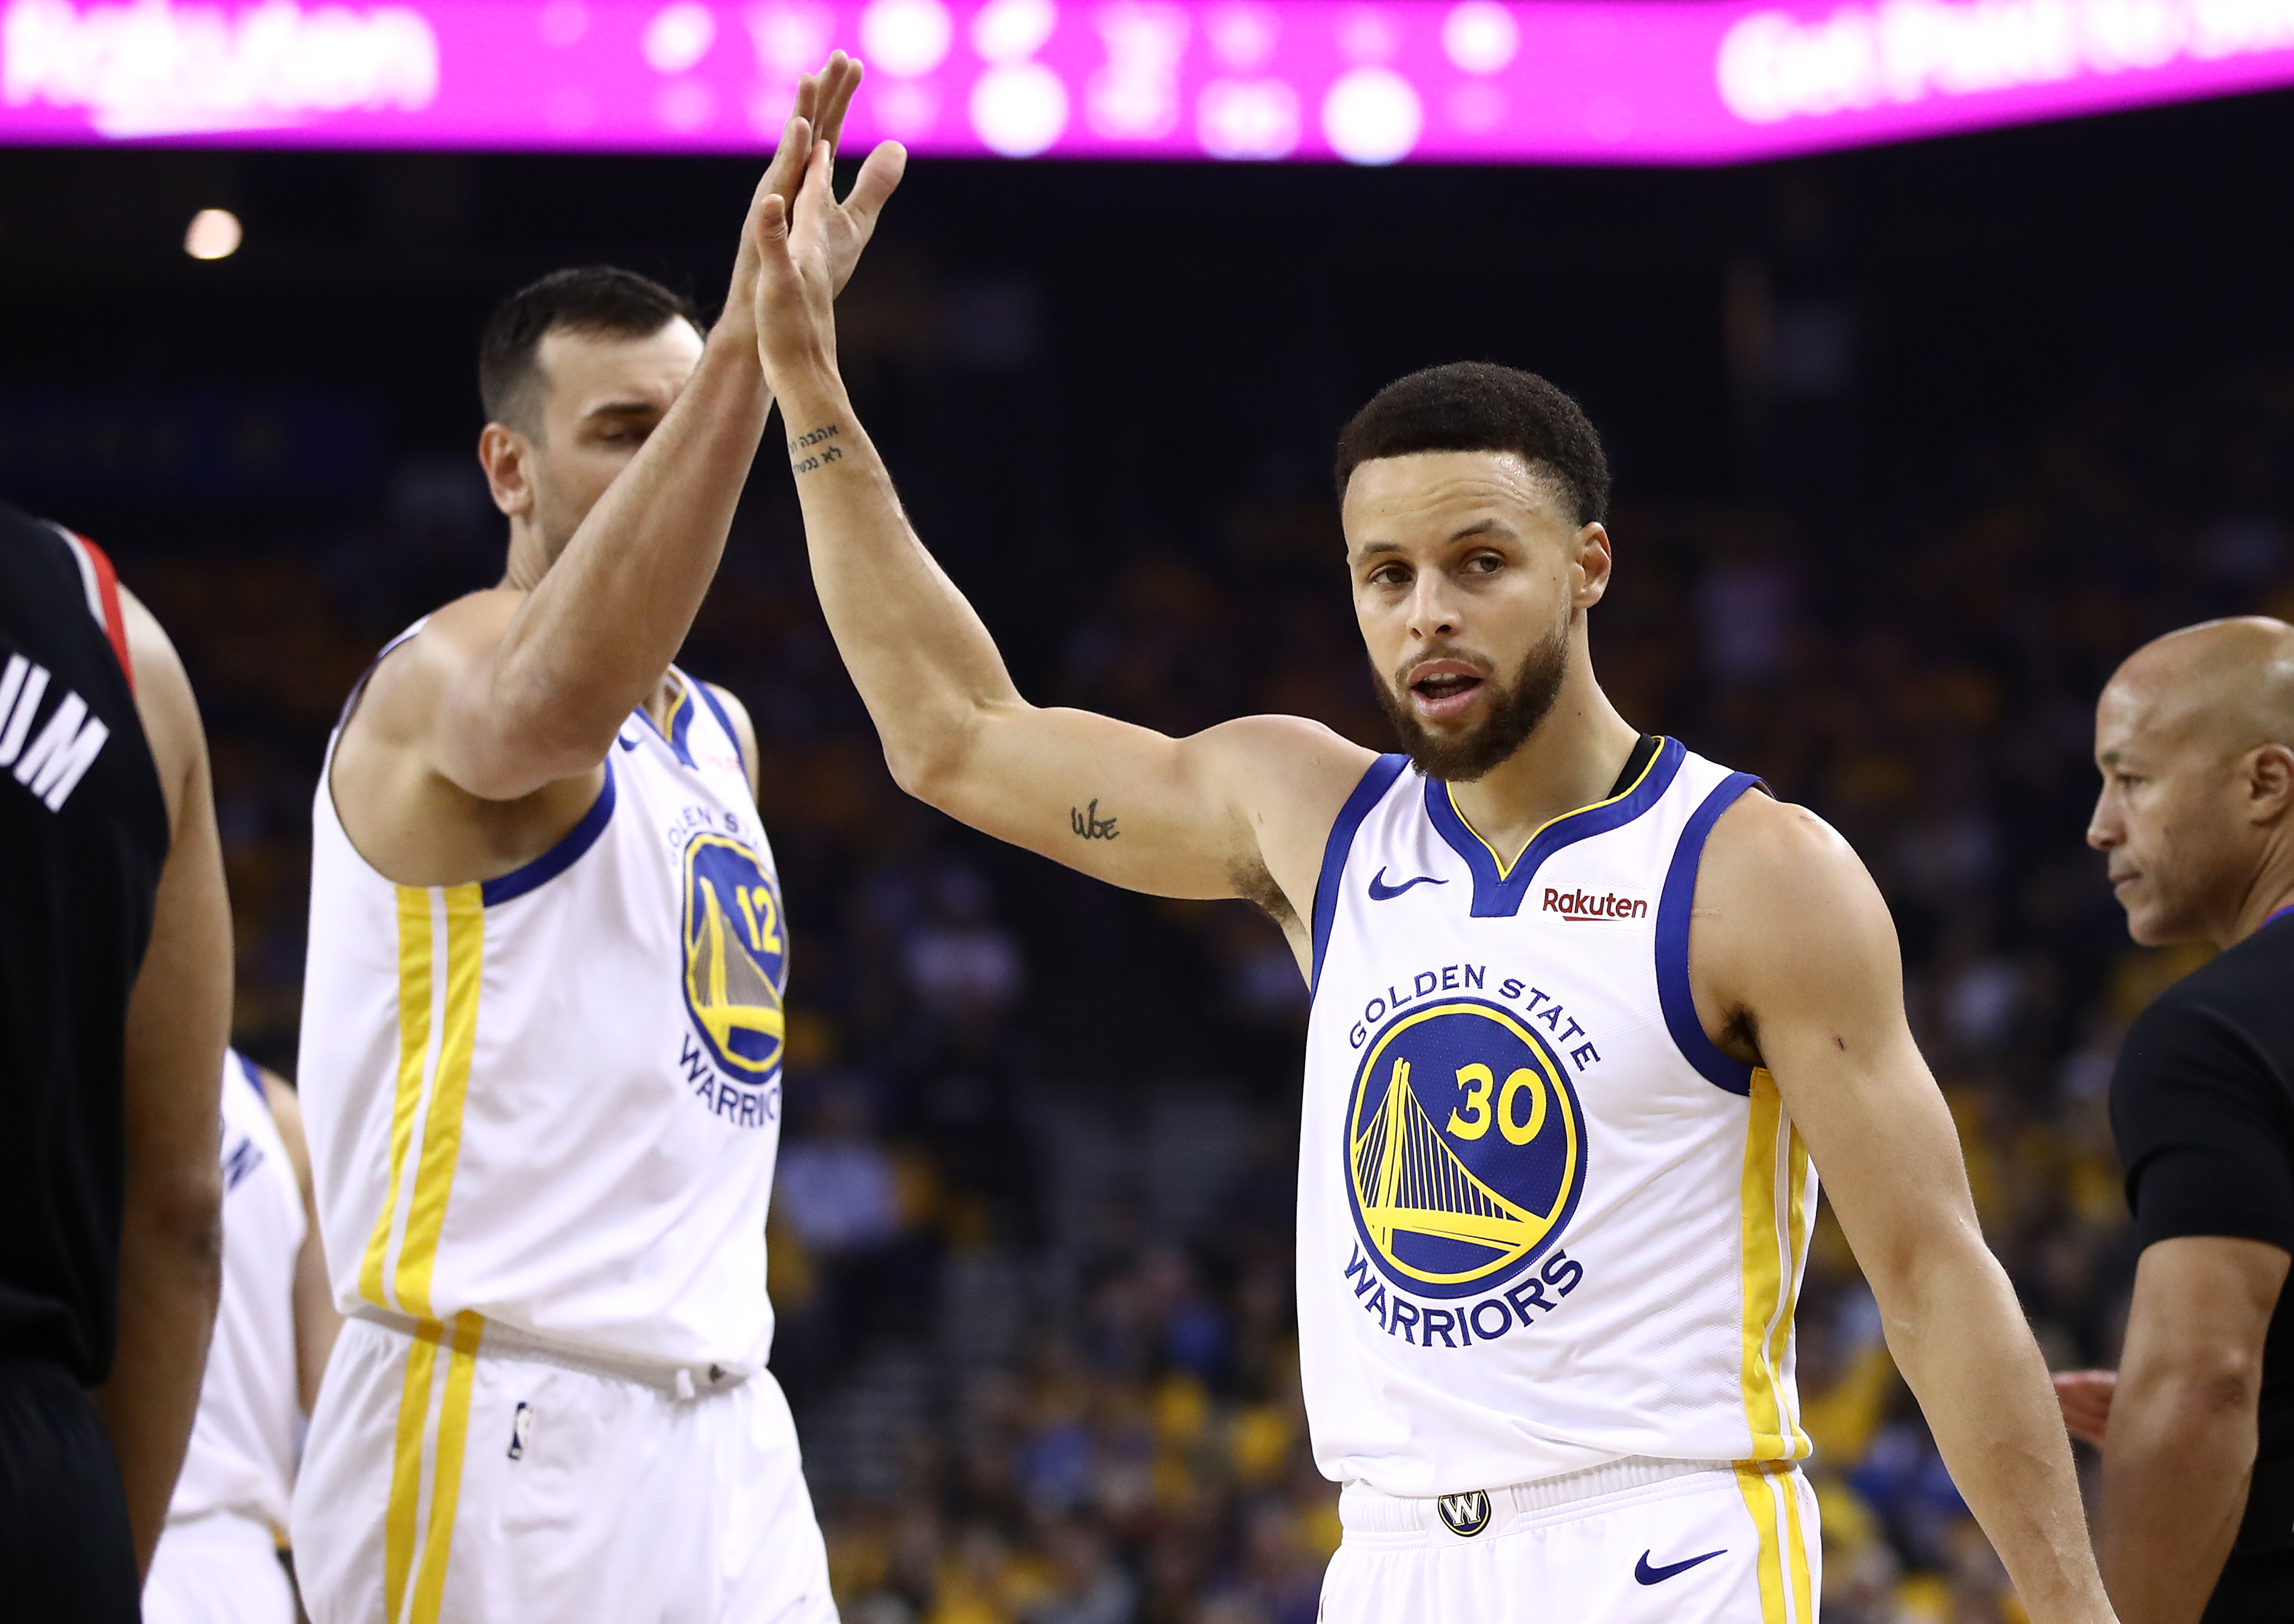 Golden State Warriors guard Steph Curry is ready to spend the rest of his career in California.